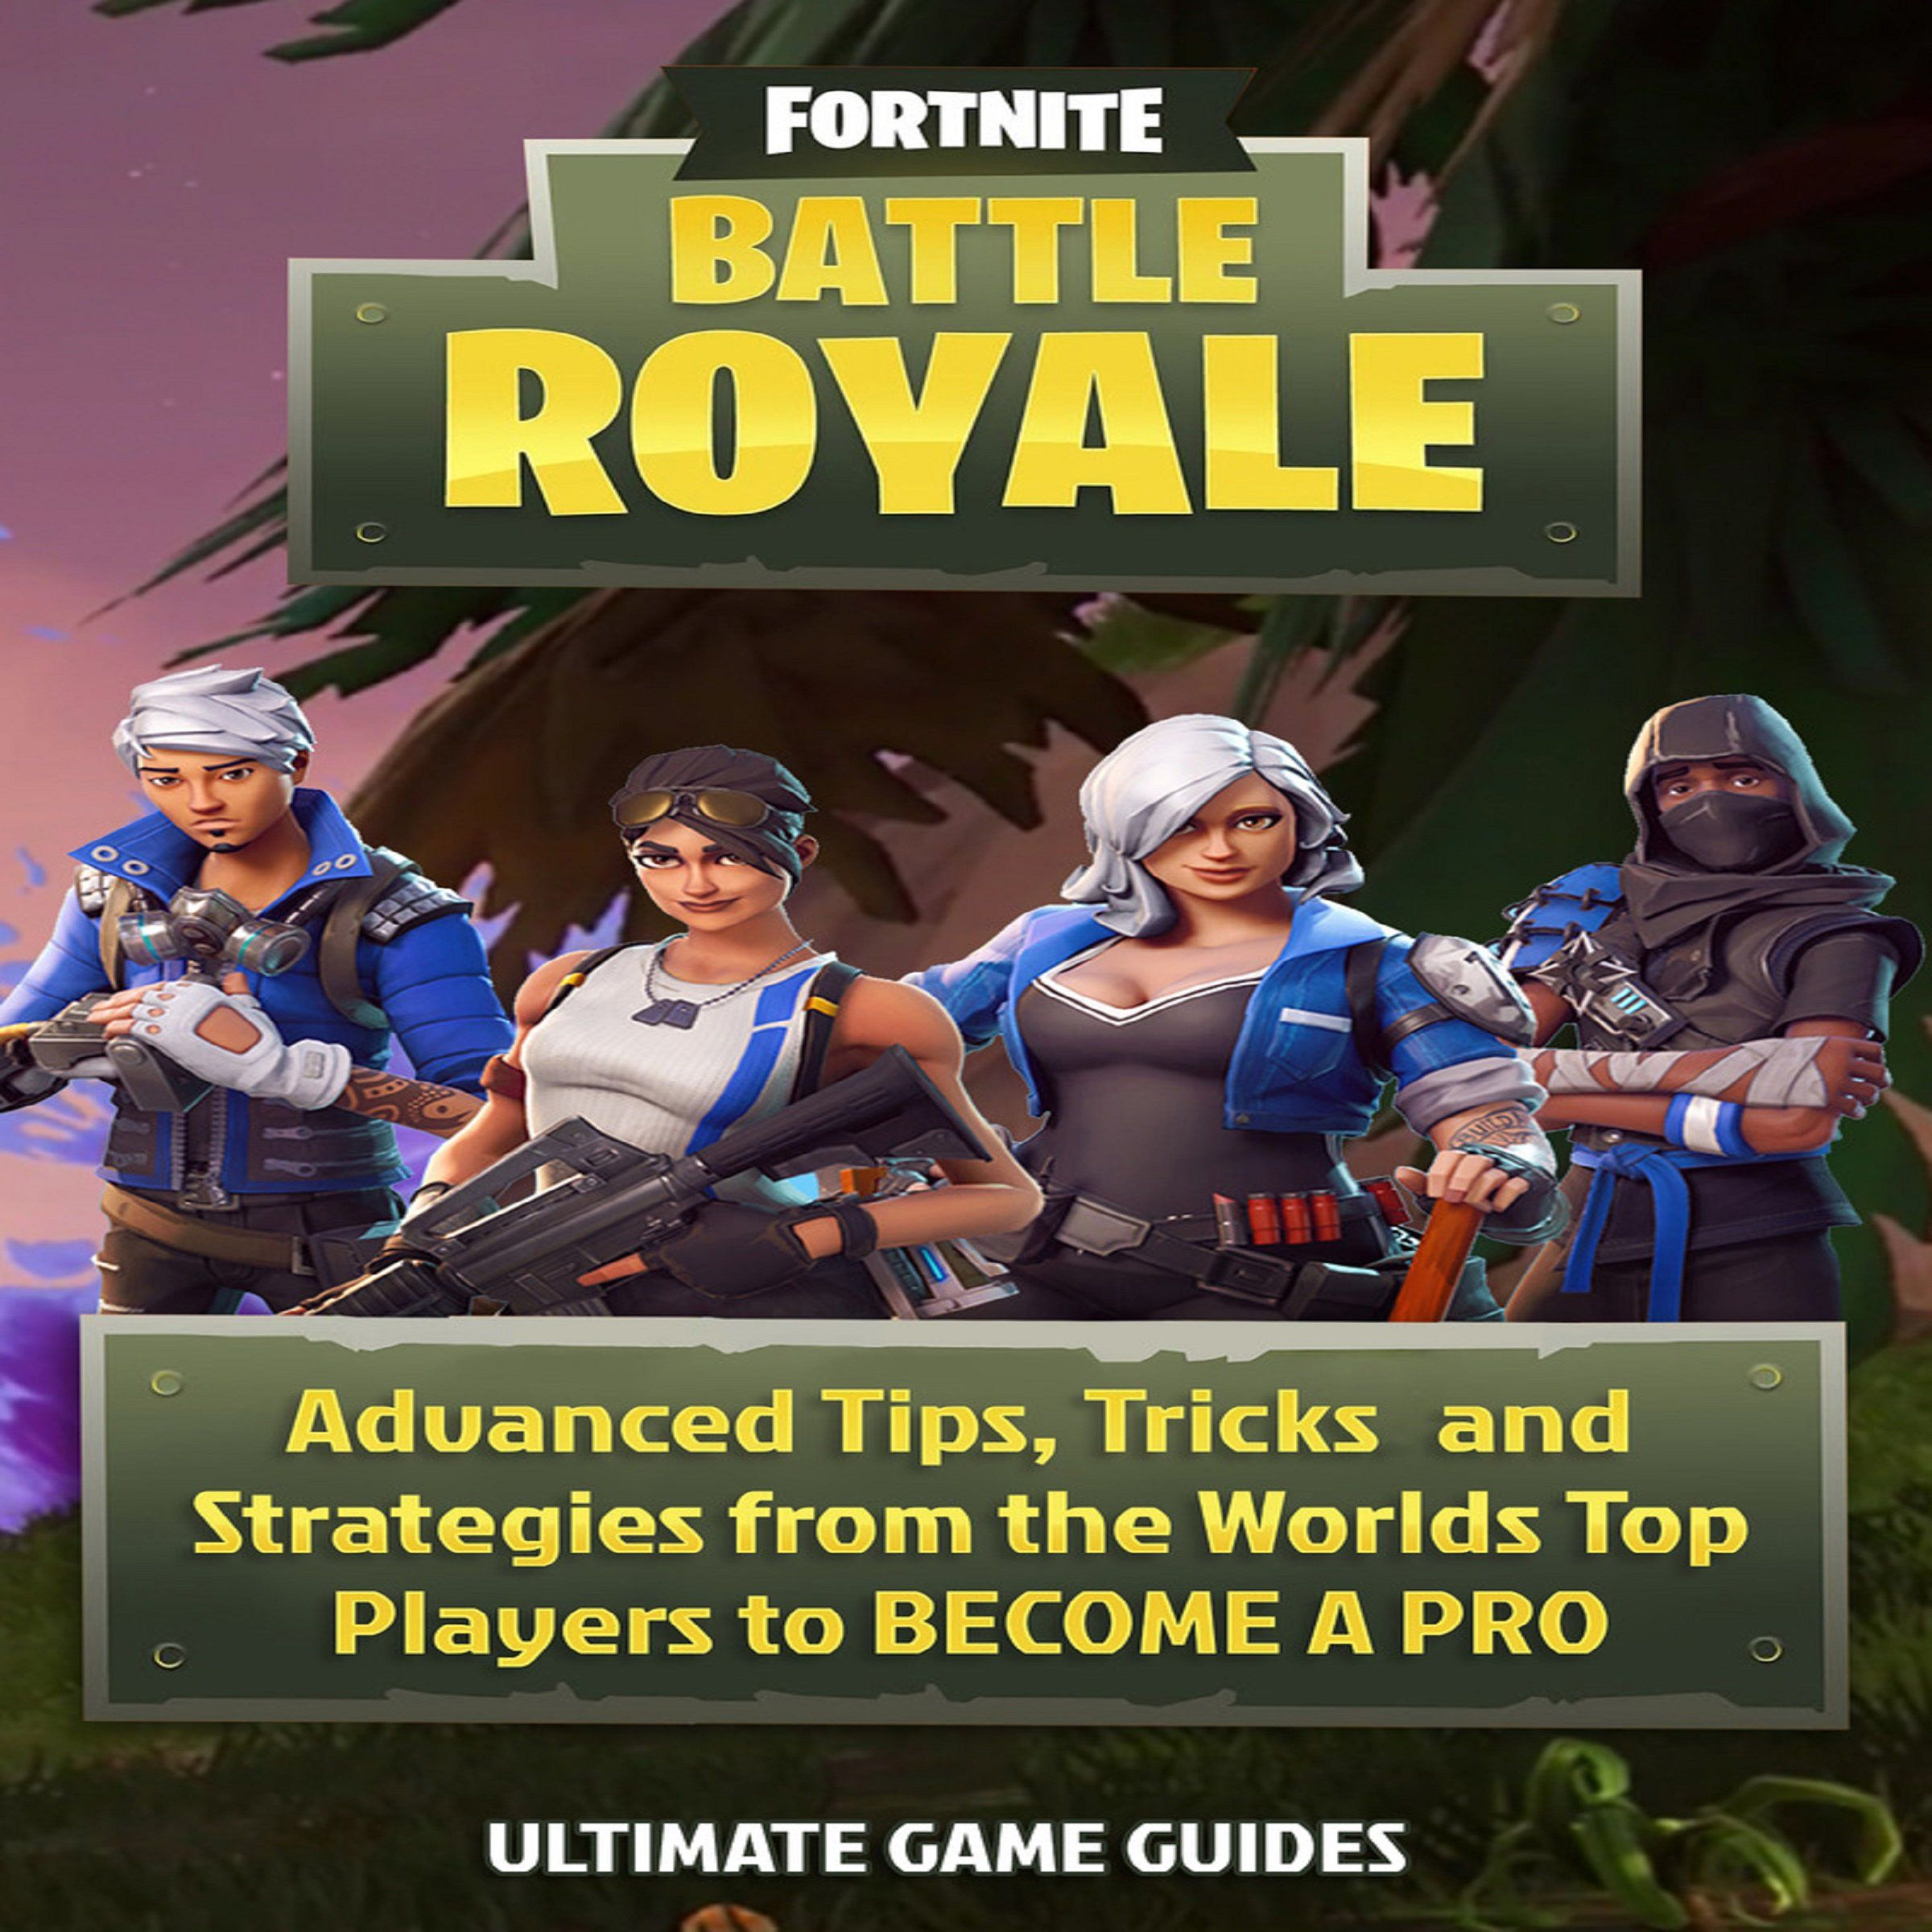 Fortnite Battle Royale Advanced Tips Tricks And Strategies To Become A Pro Find Out More Evaluations Of The Product By Visiting Fortnite Game Guide Battle